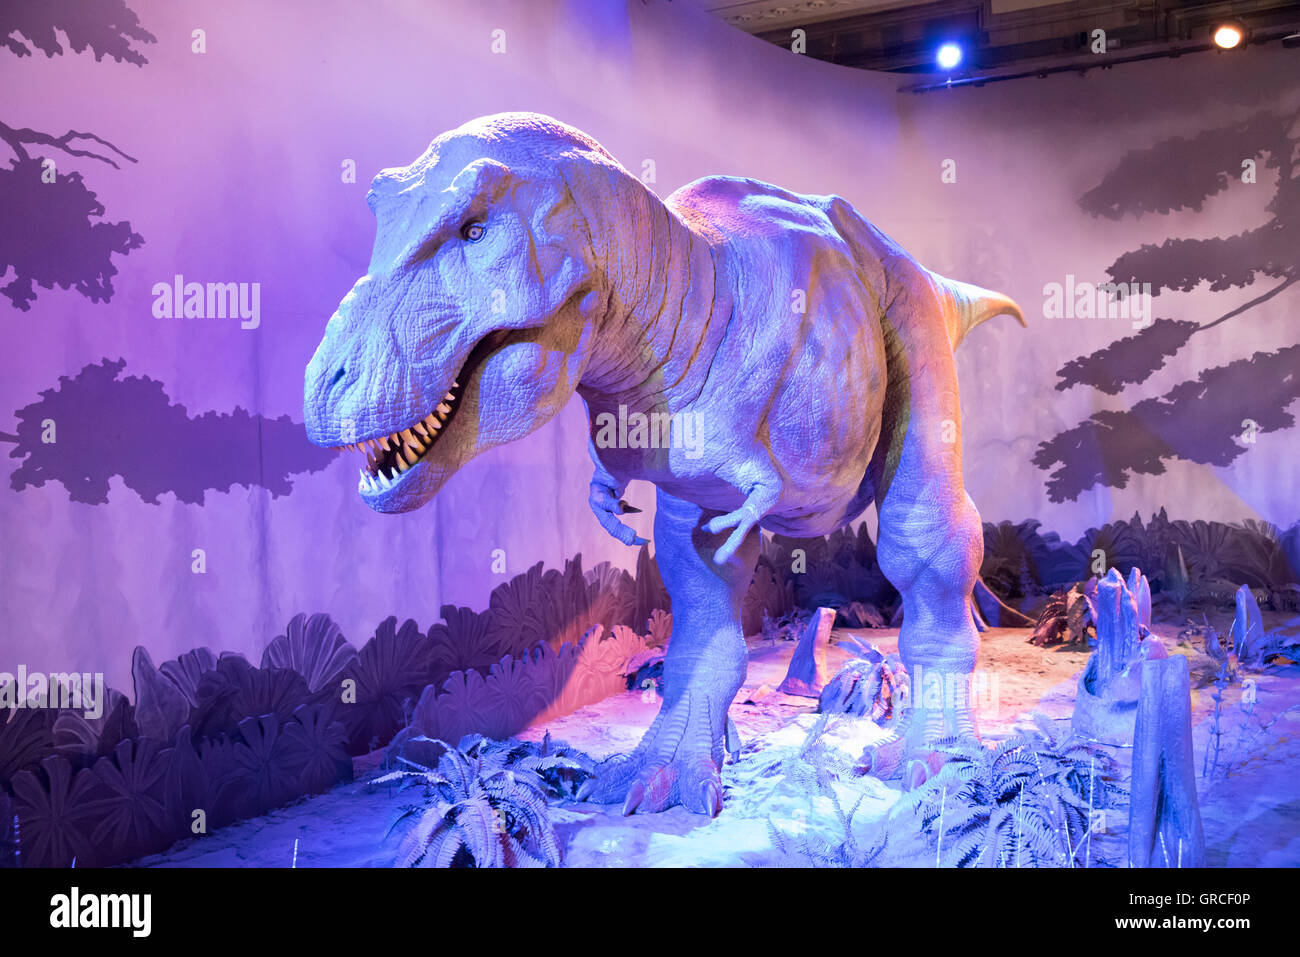 T. Rex at the Dinosaurs exhibit at the Natural History Museum, London, England. - Stock Image